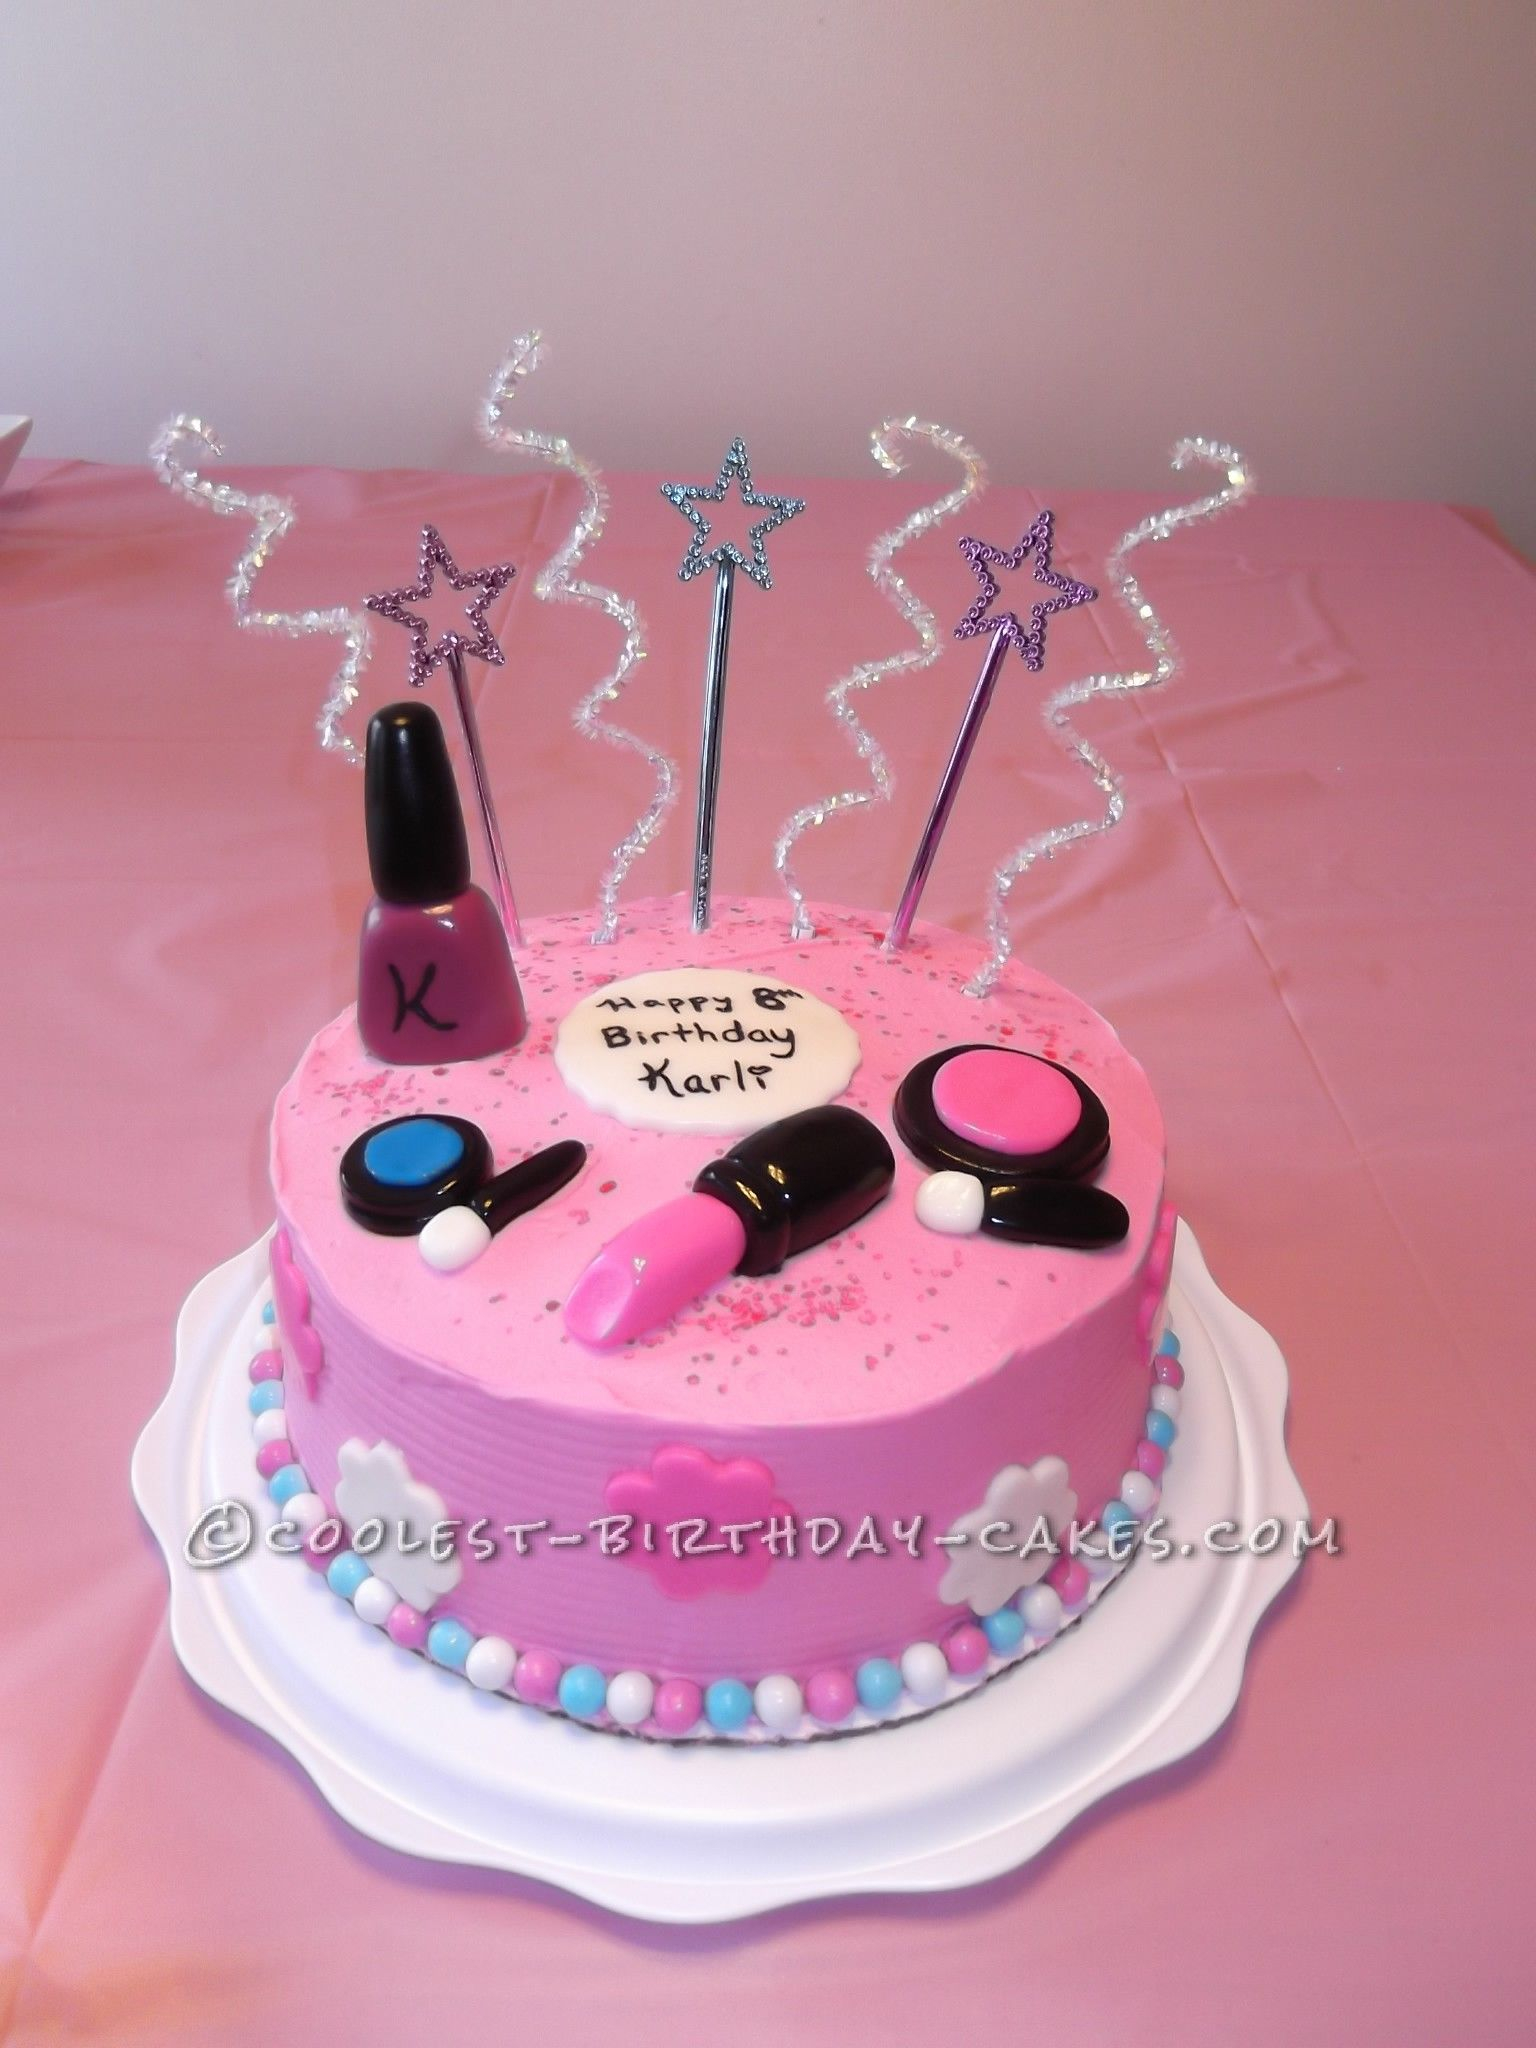 Birthday Cakes For 8 Years Old Girl Sweet Makeup Cake For An 8 Year Old Girl Cake And Chocolate